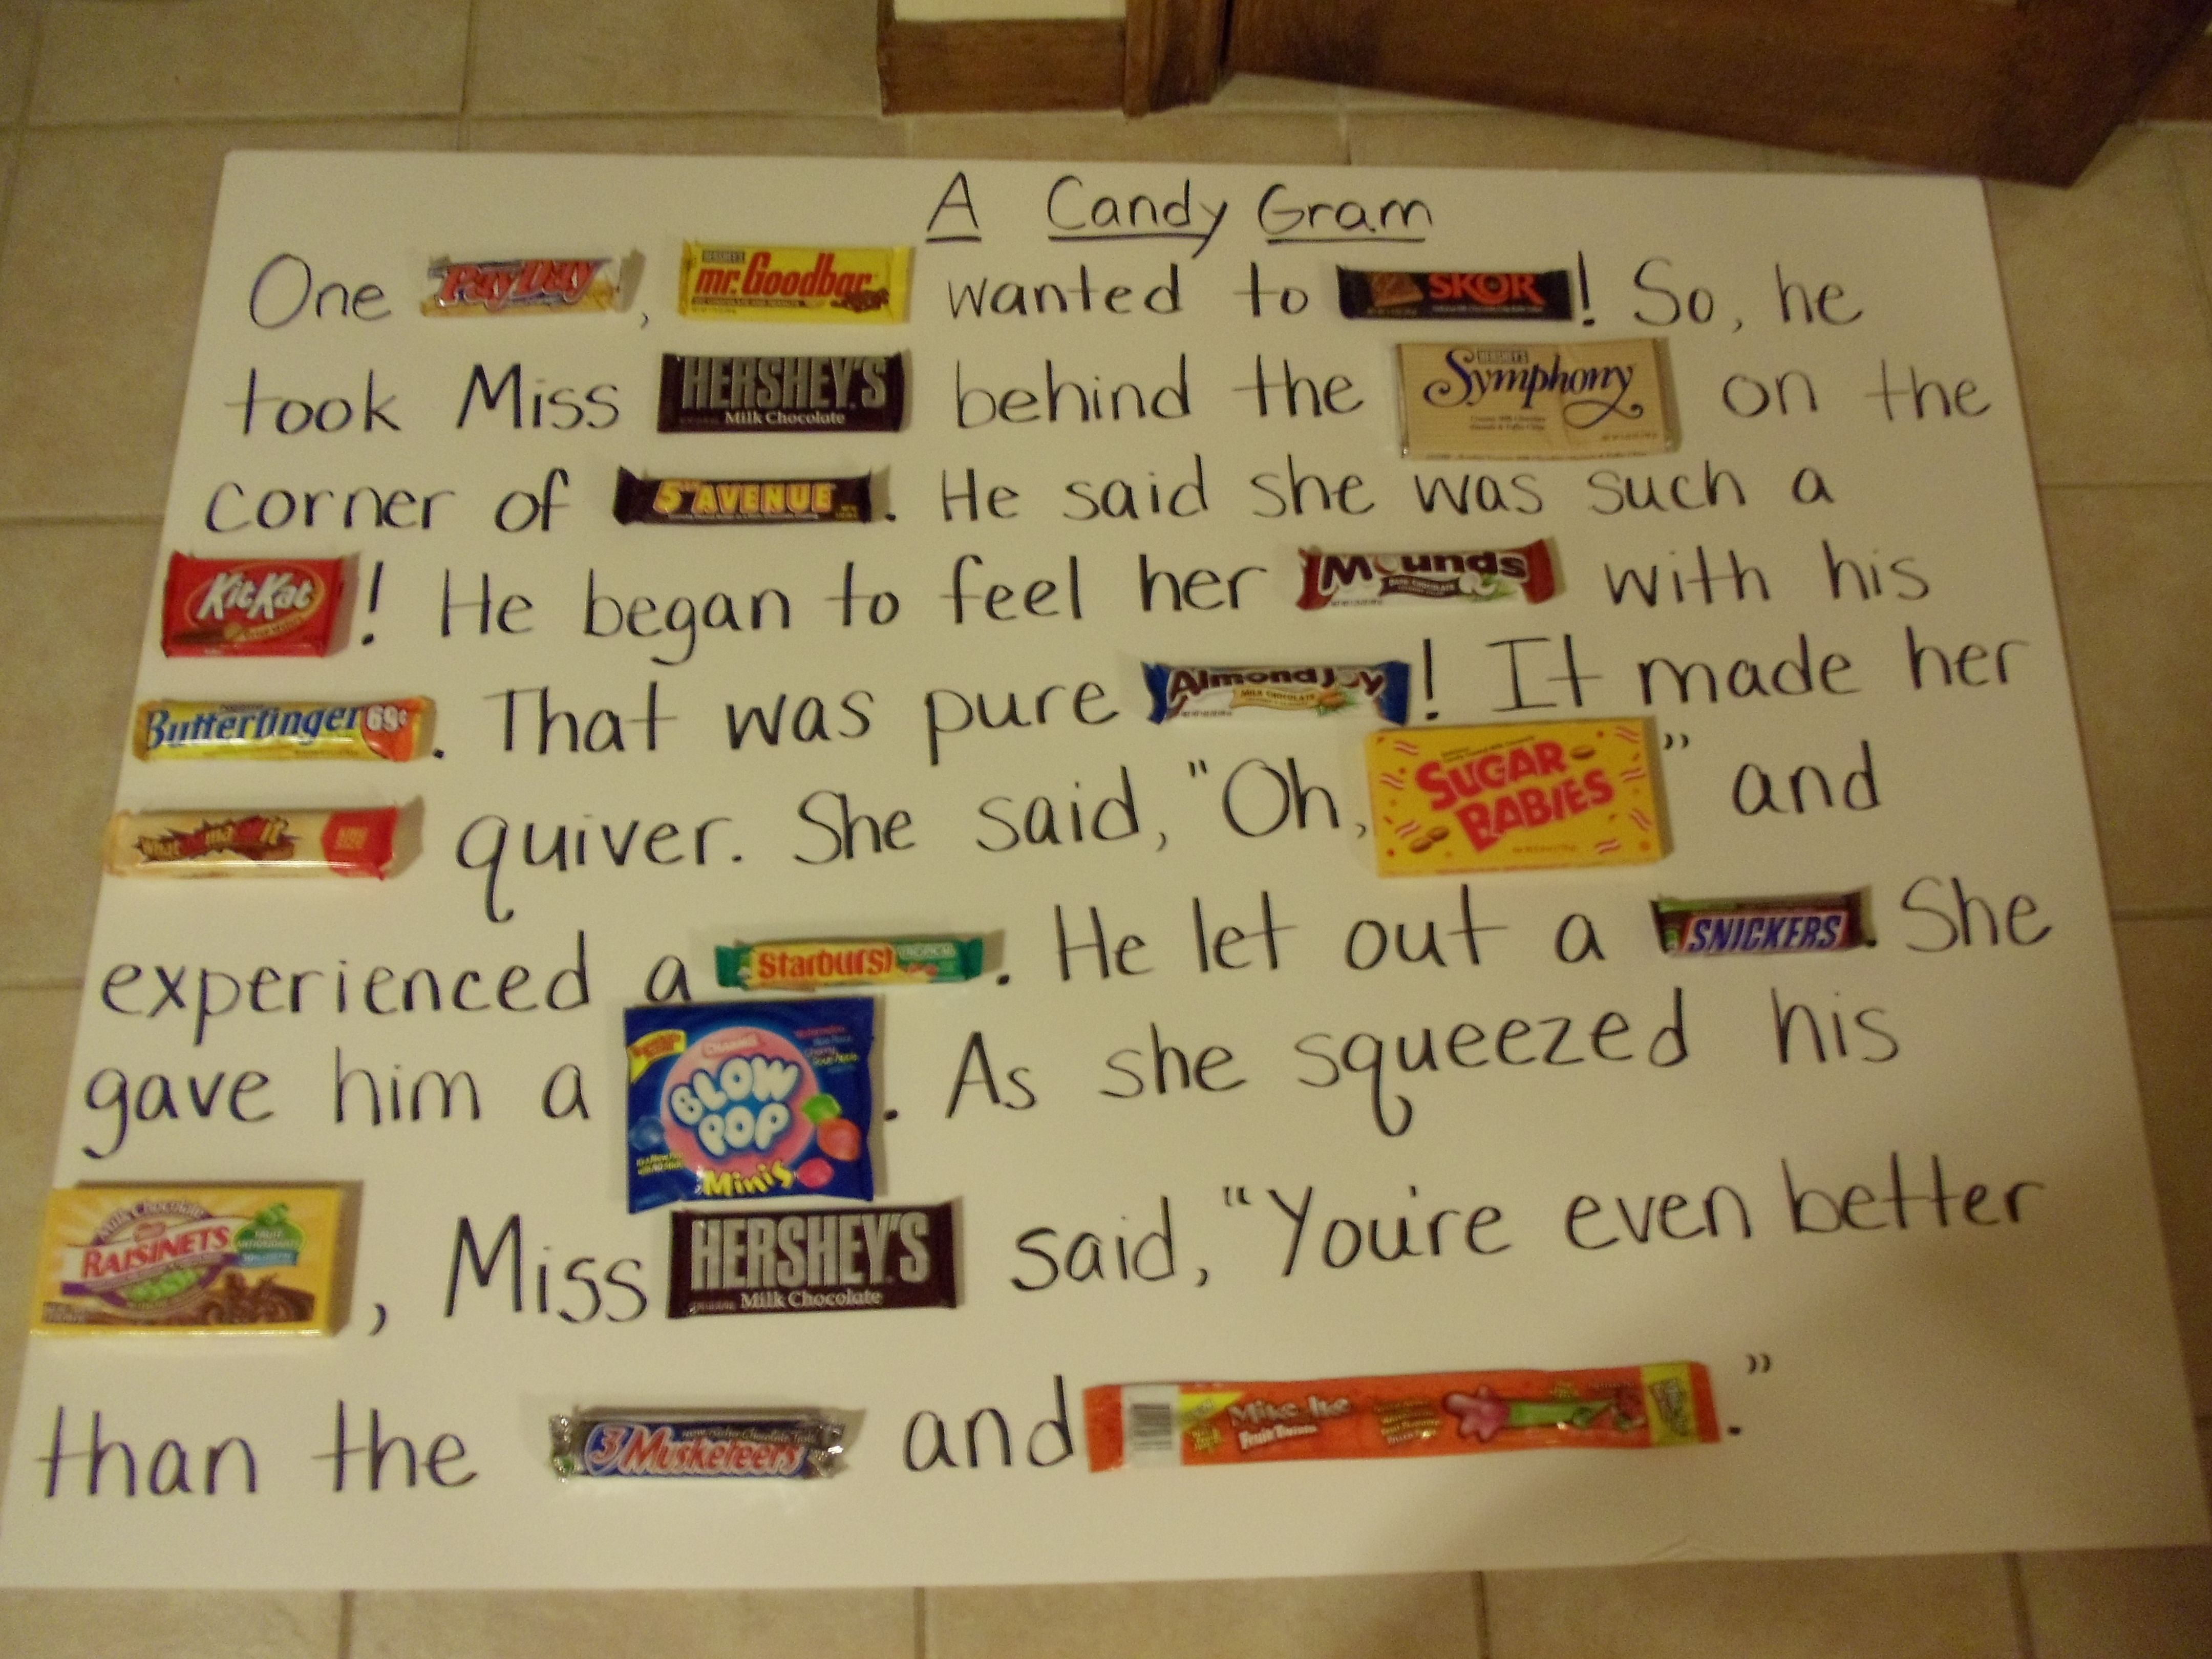 My friend made this candy gram for her boyfriends 40th birthday